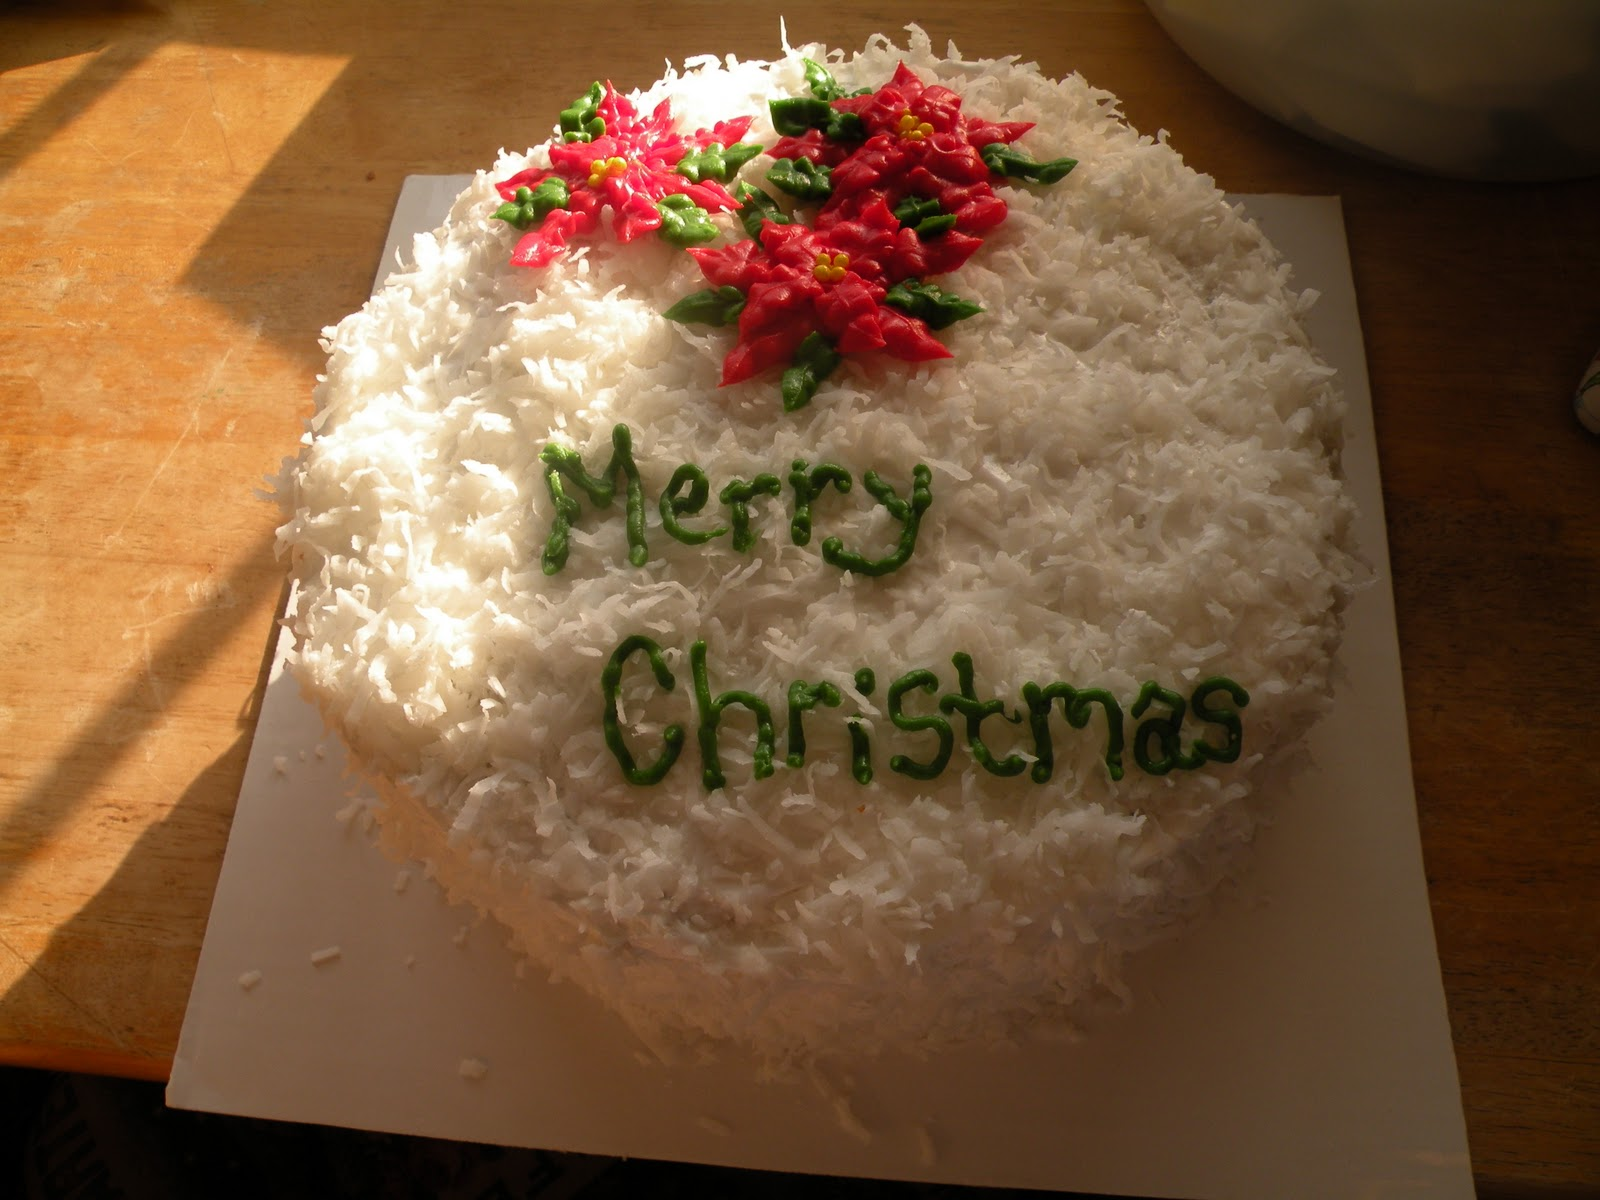 Merry Christmas Cakes